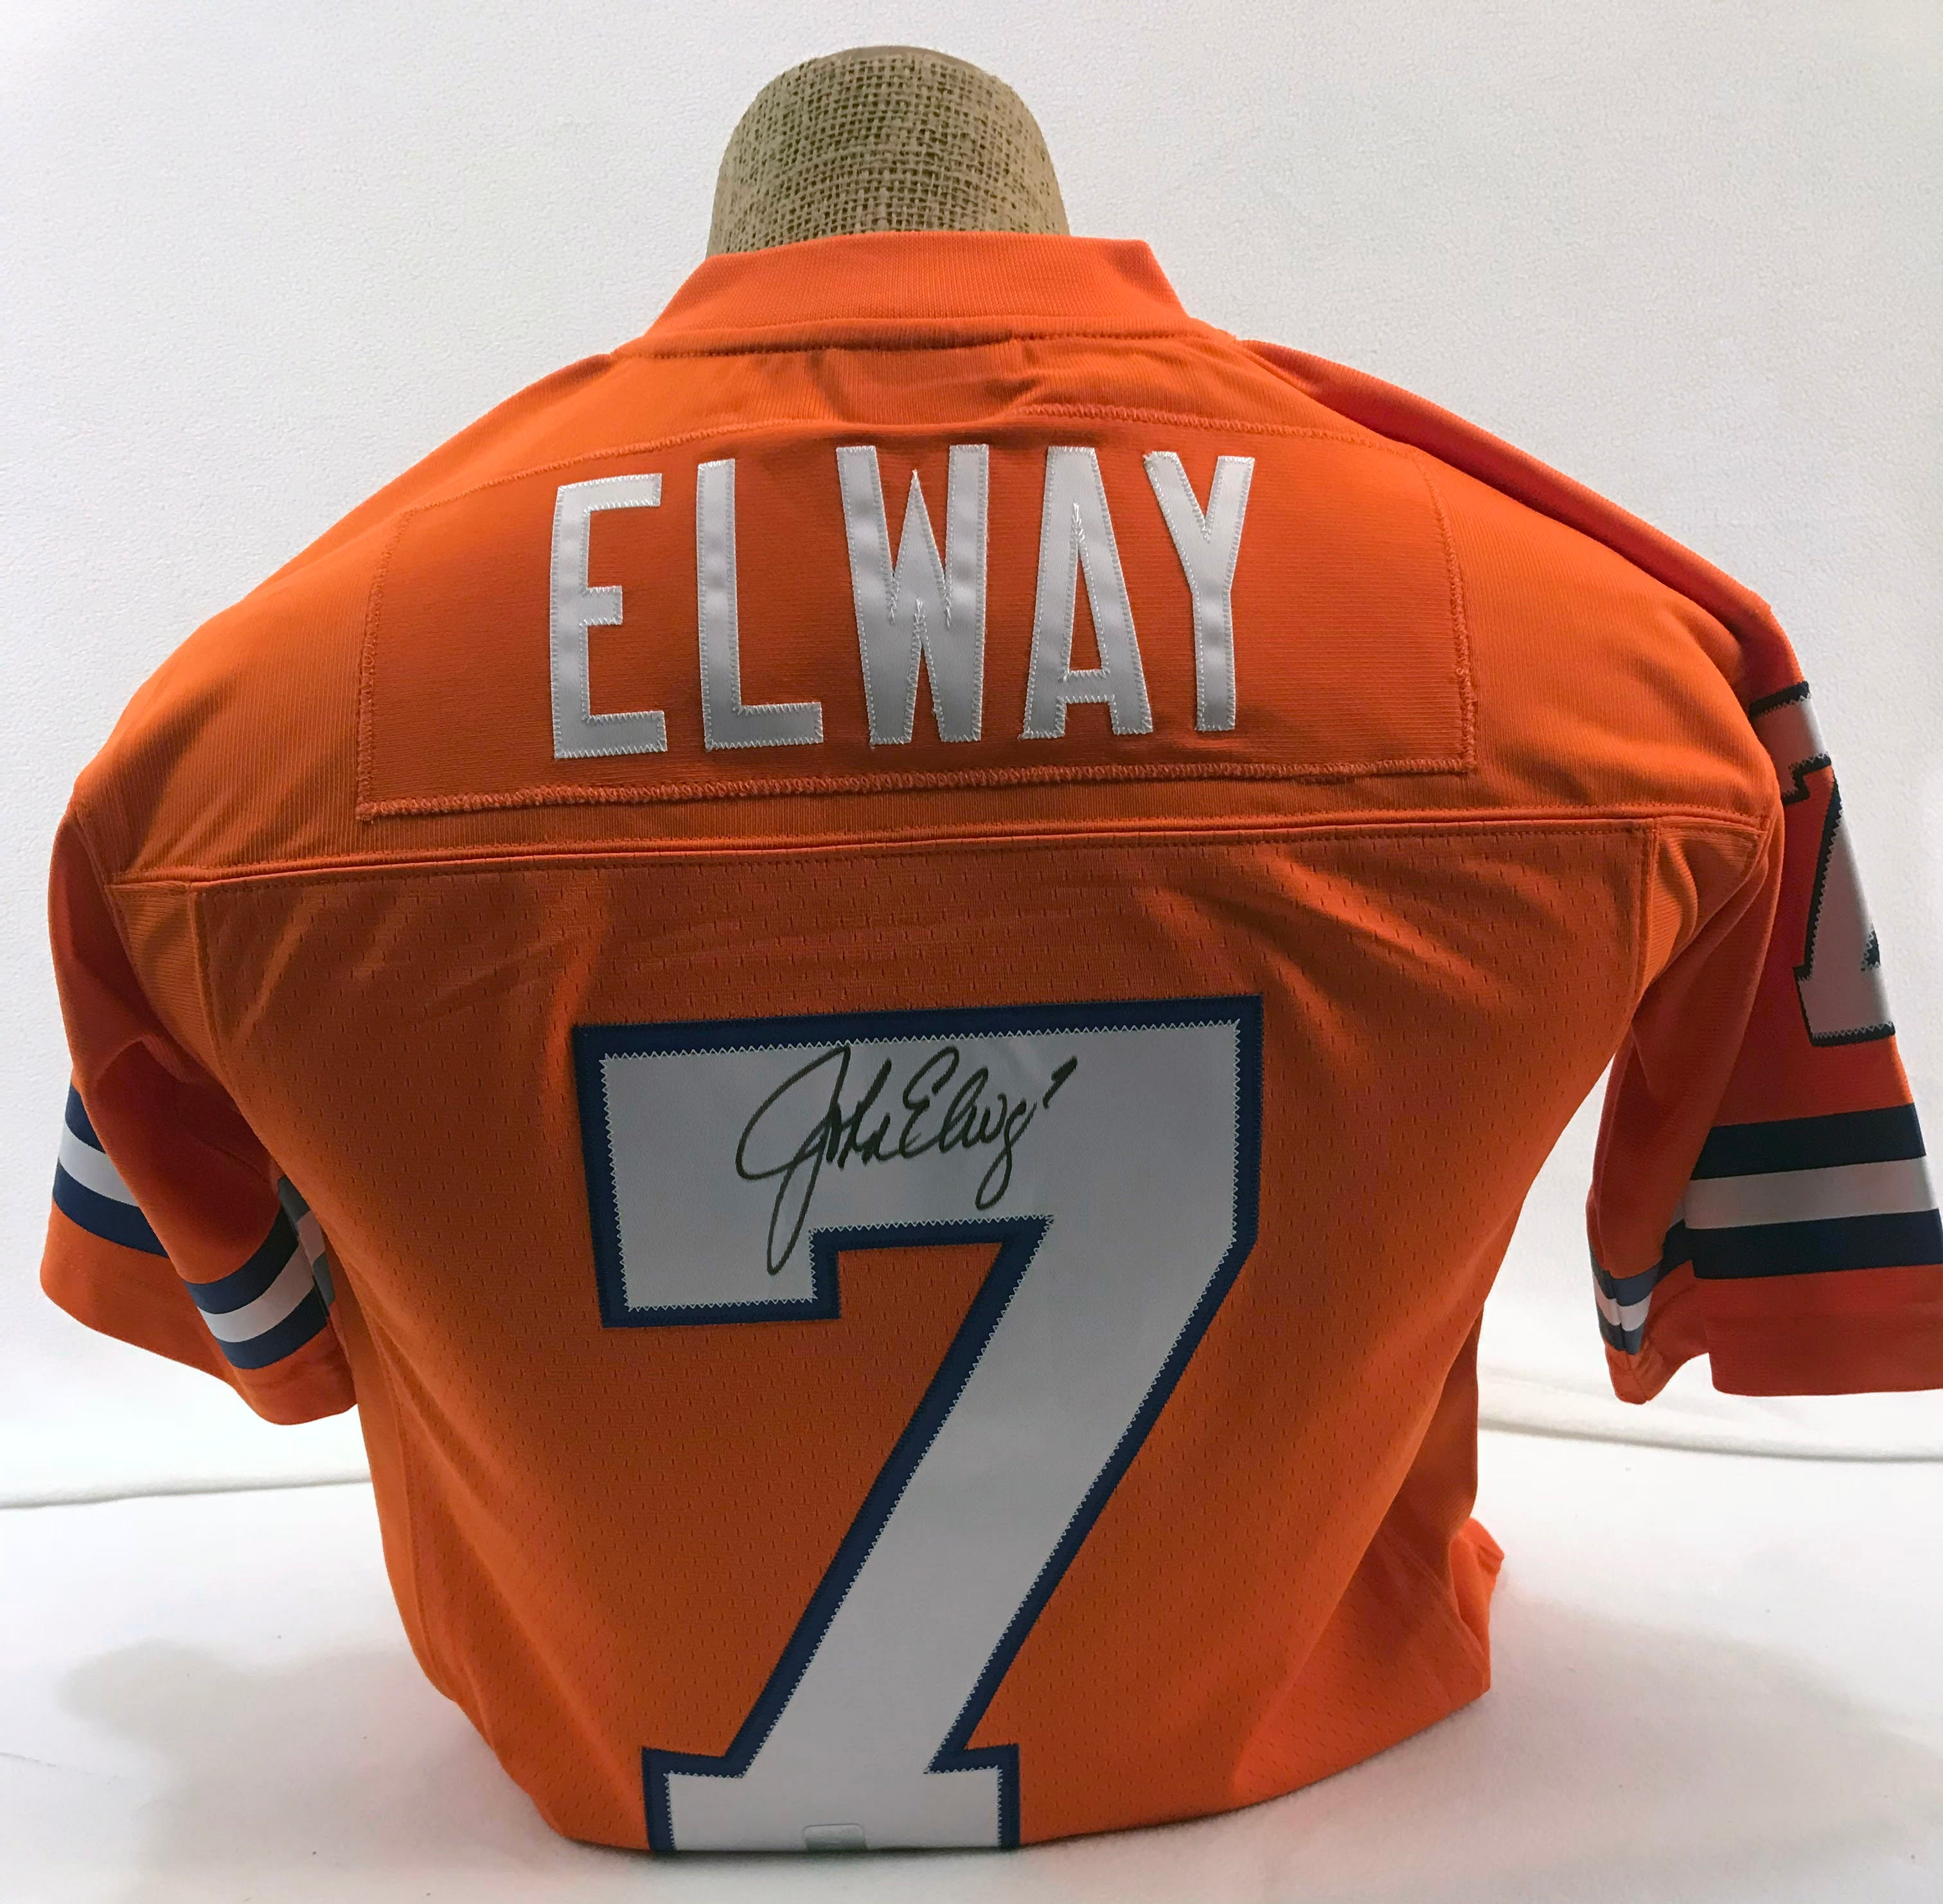 John Elway Signed Orange Mitchell and Ness Jersey